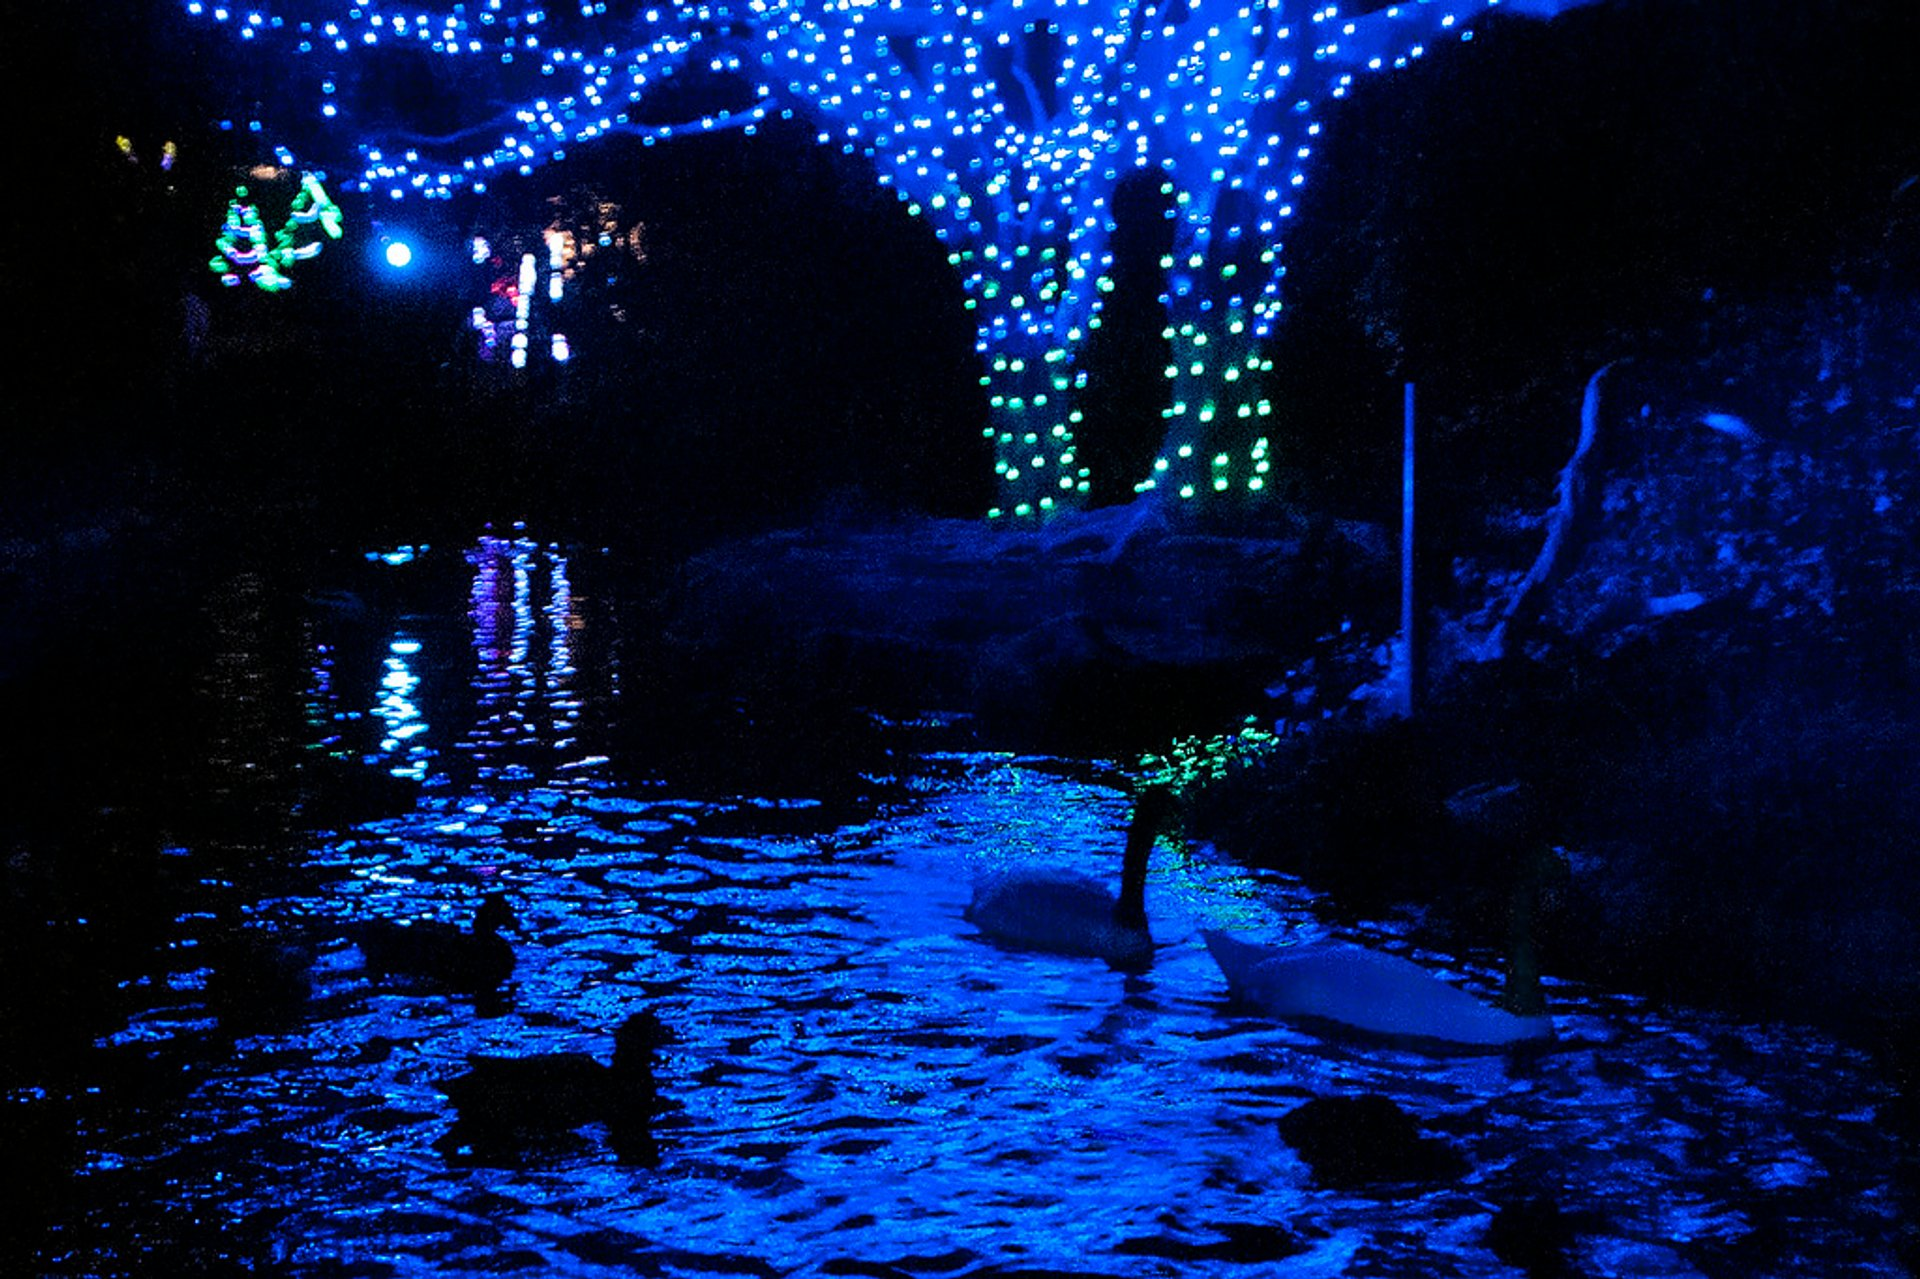 Swan pond at the L.A. Zoo, illuminated for the holidays. 2020